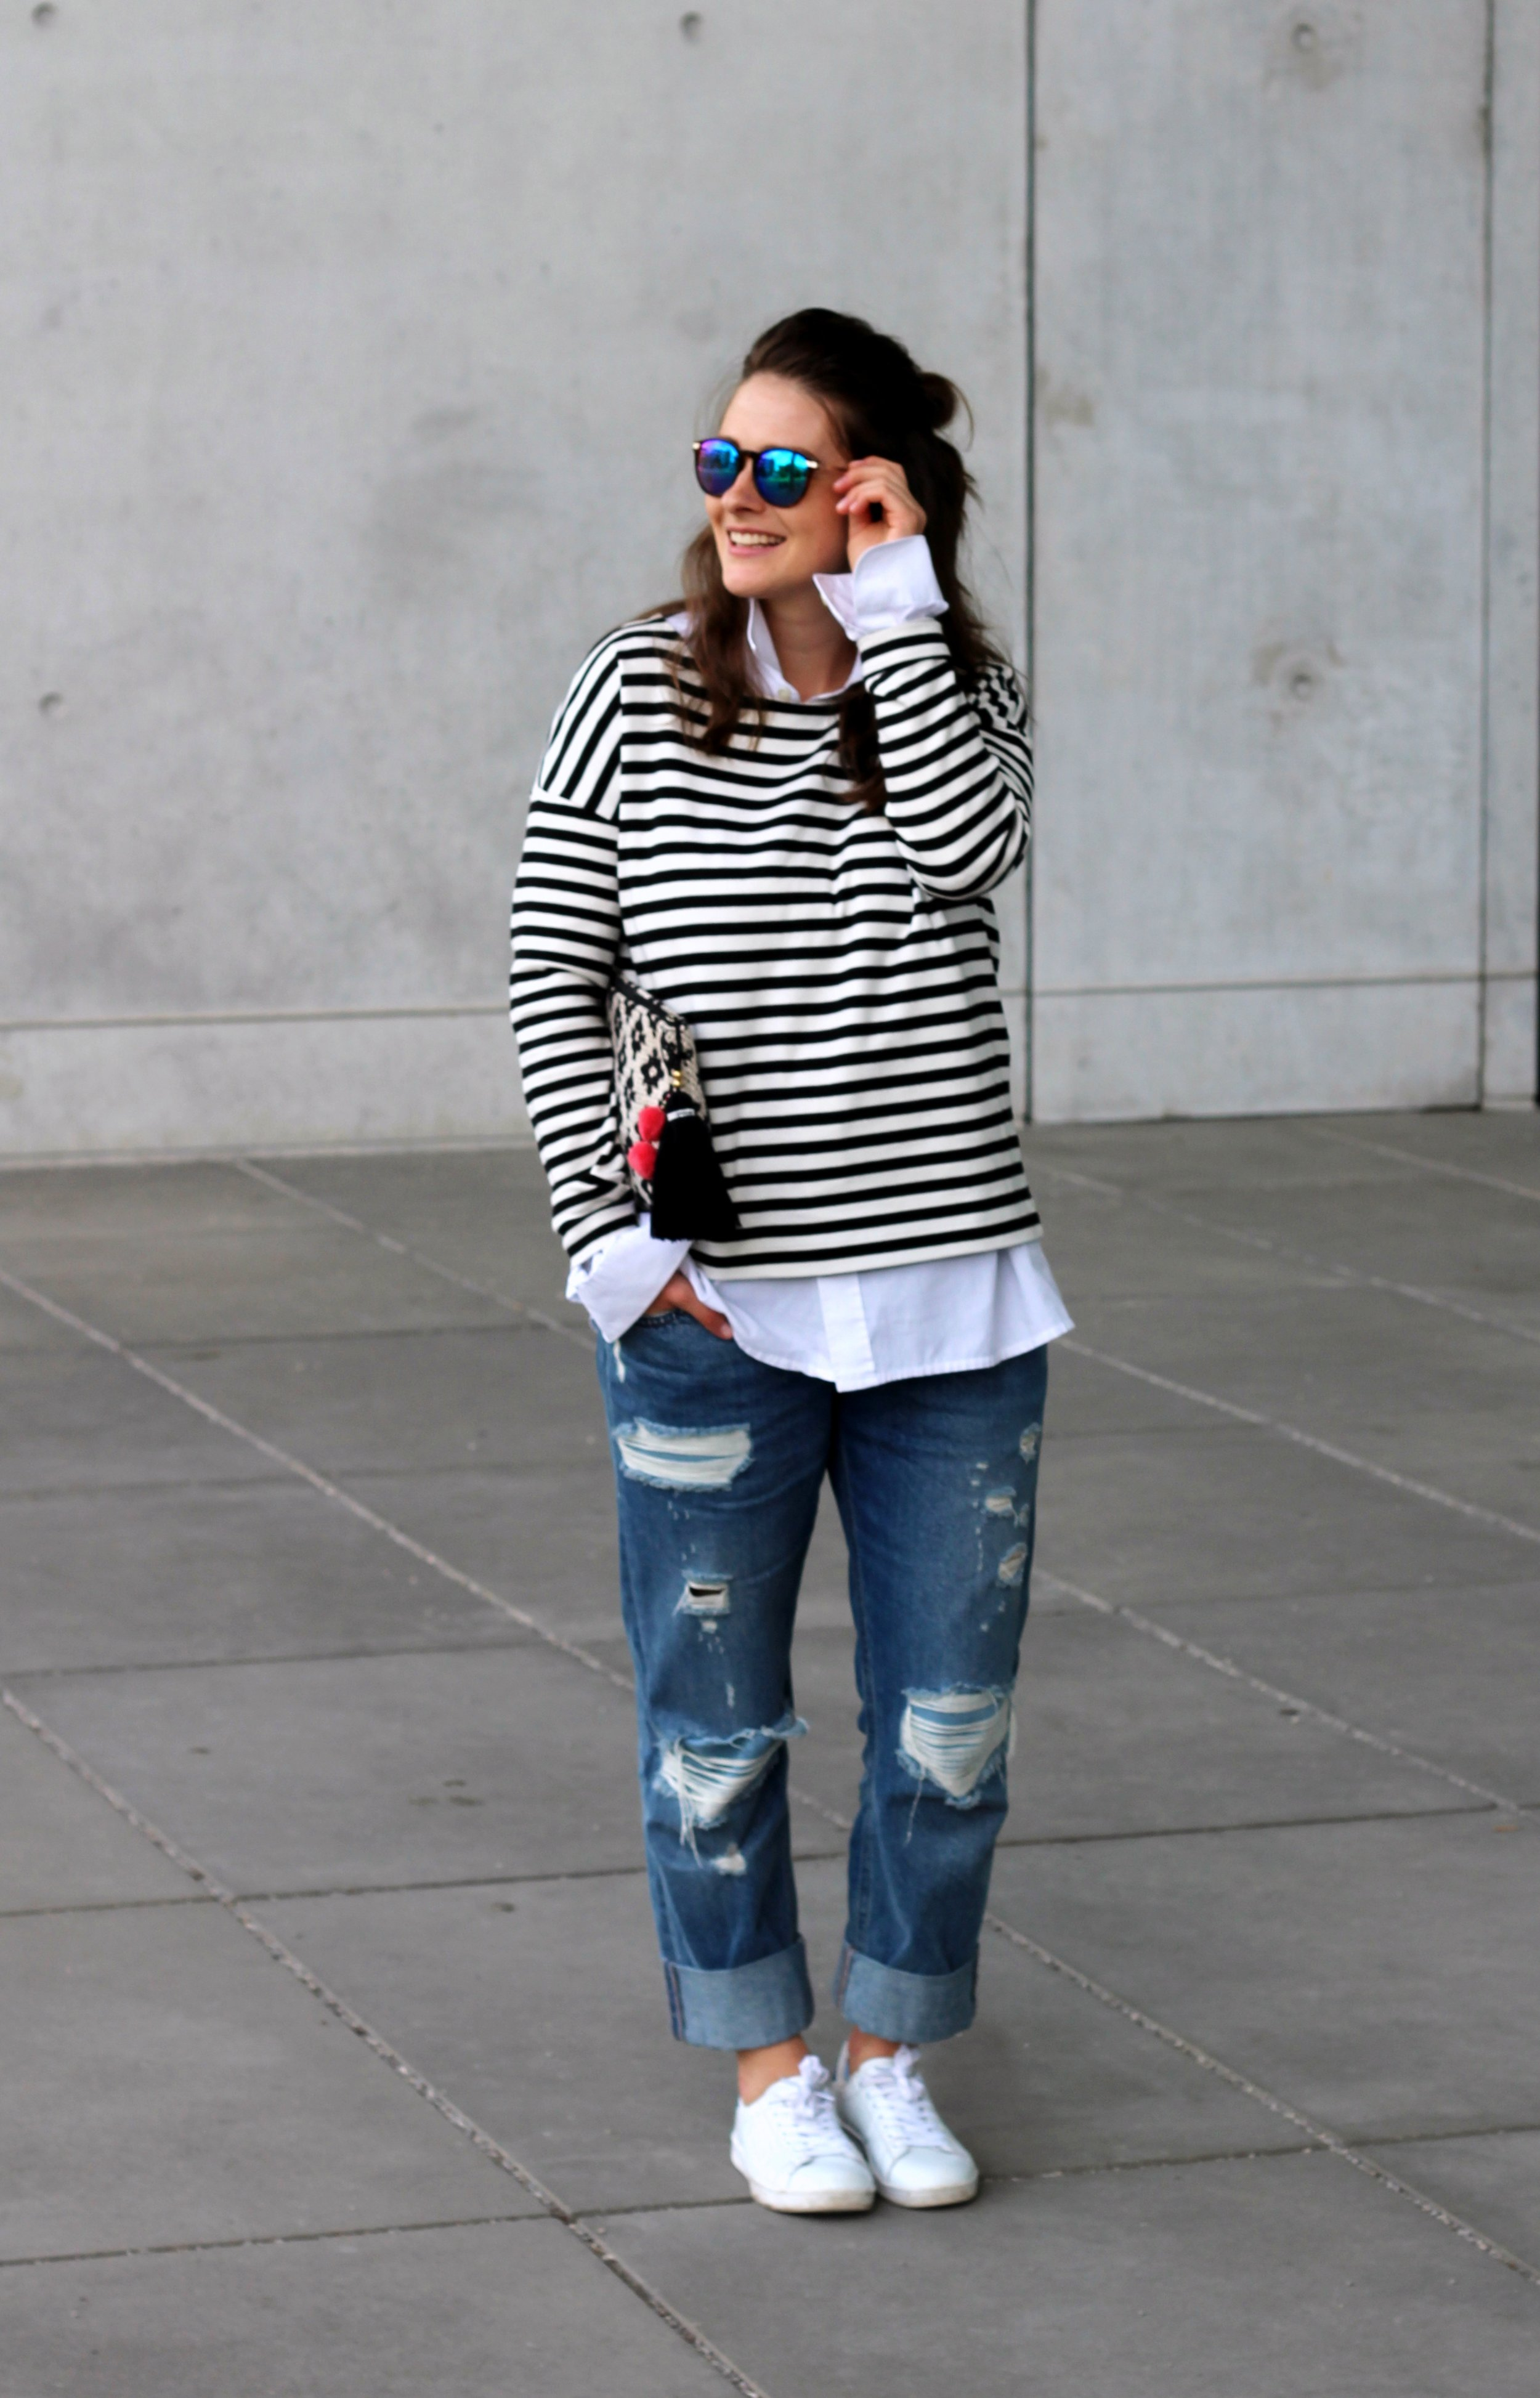 stripes-jeans-sneakers-annaporter-look-outfit-classic